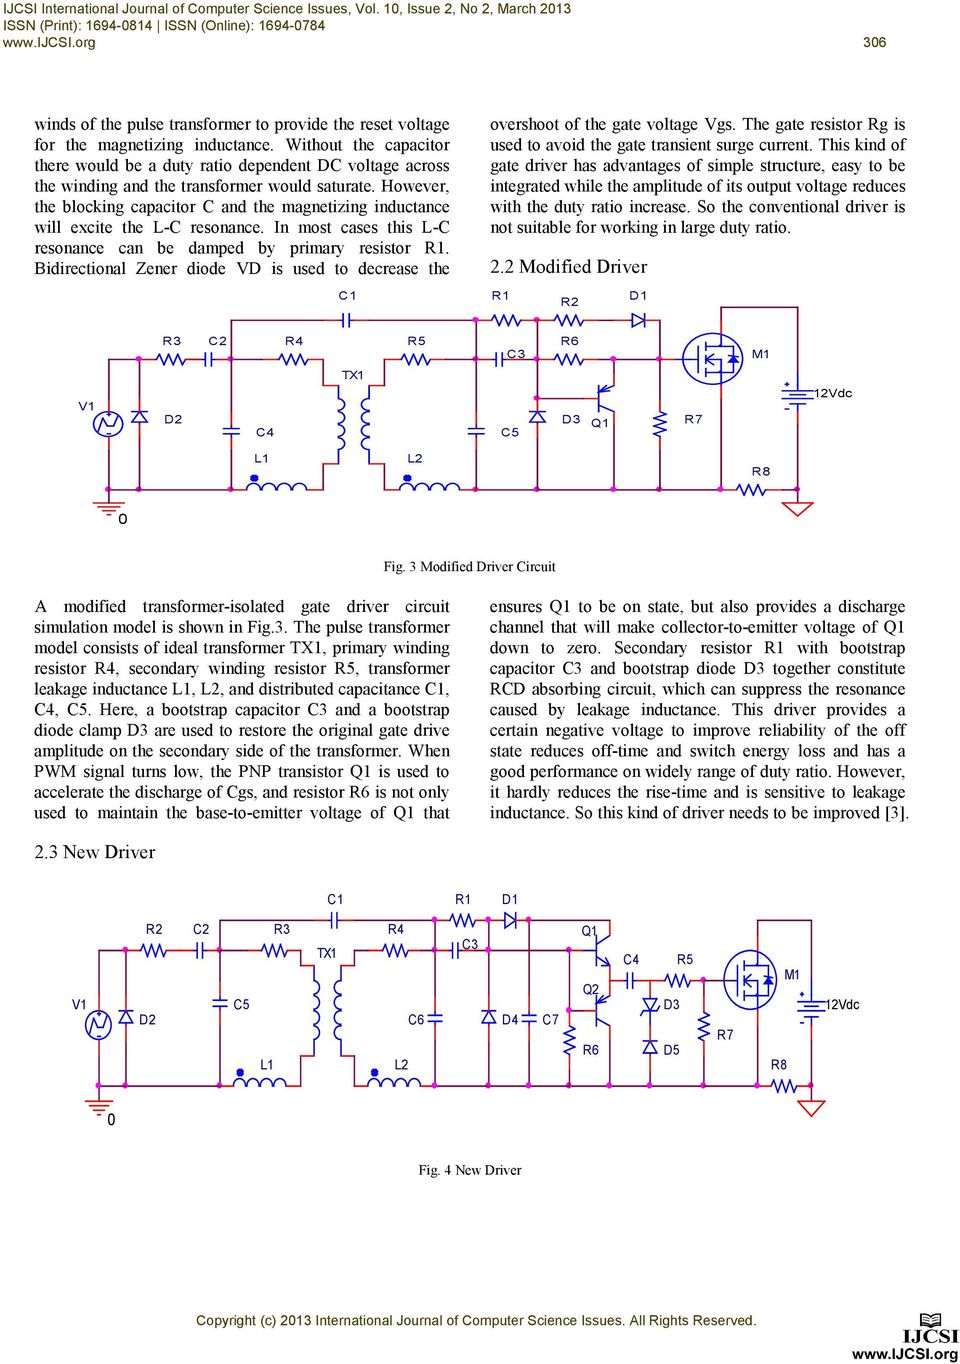 Design And Simulation Of Gate Driver Circuit Using Pulse Transformer Software For Analysis Rectifier Without The Capacitor There Would Be A Duty Ratio Dependent Dc Voltage Across Winding